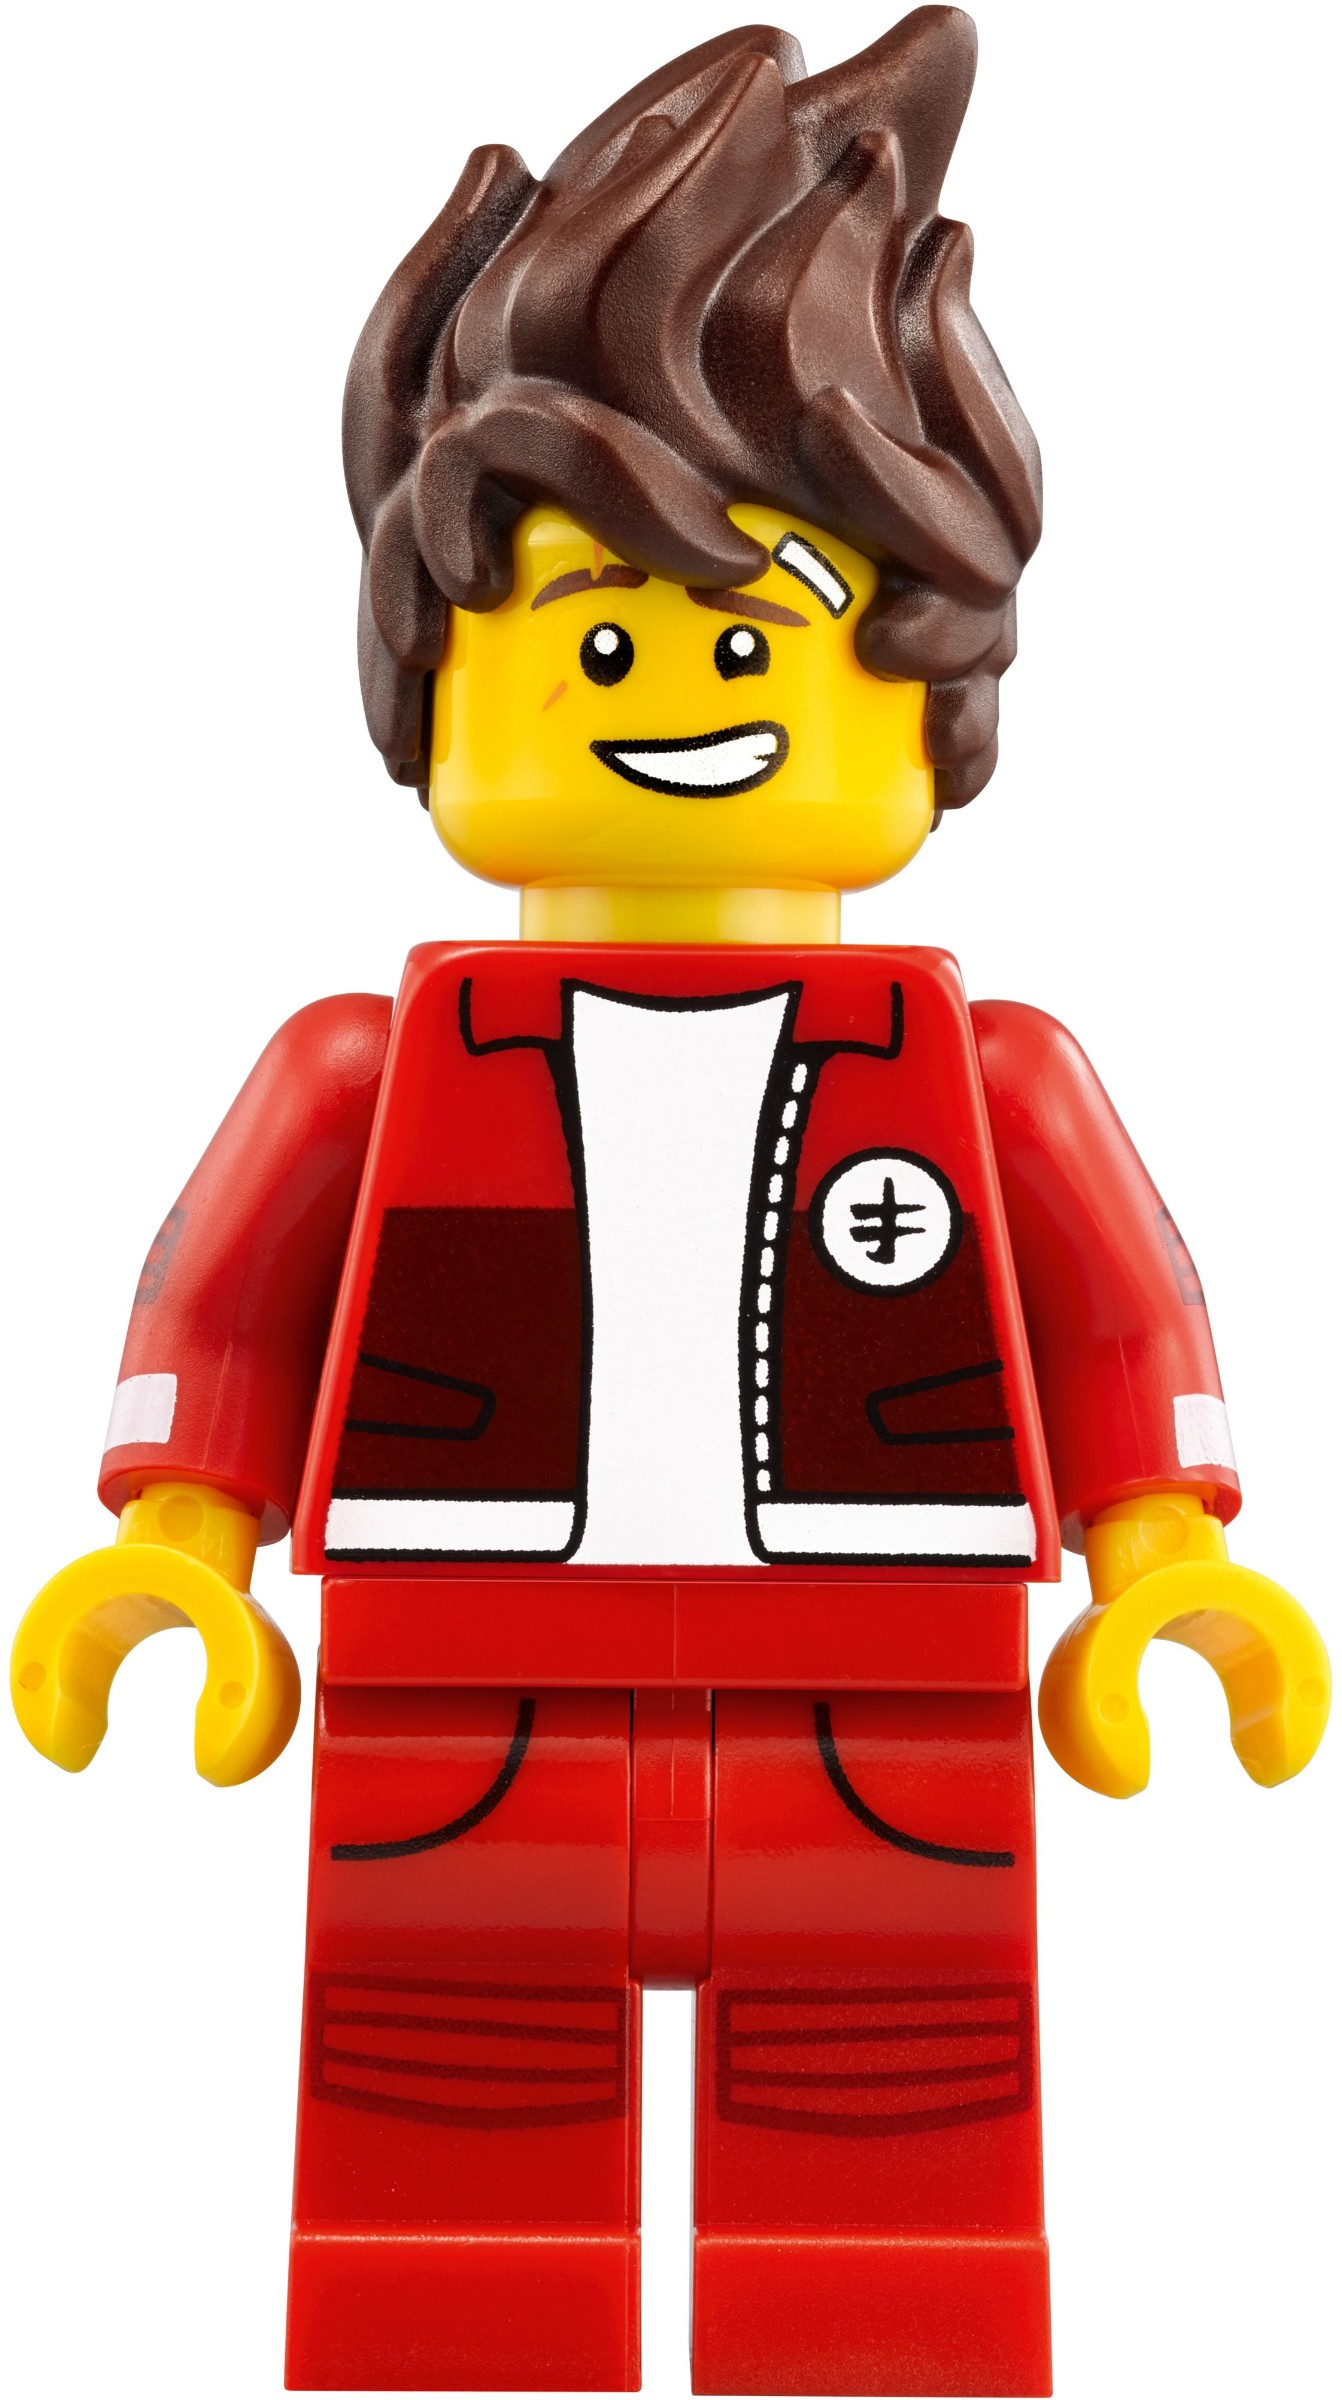 https://images.brickset.com/sets/AdditionalImages/70620-1/70620_alt18.jpg